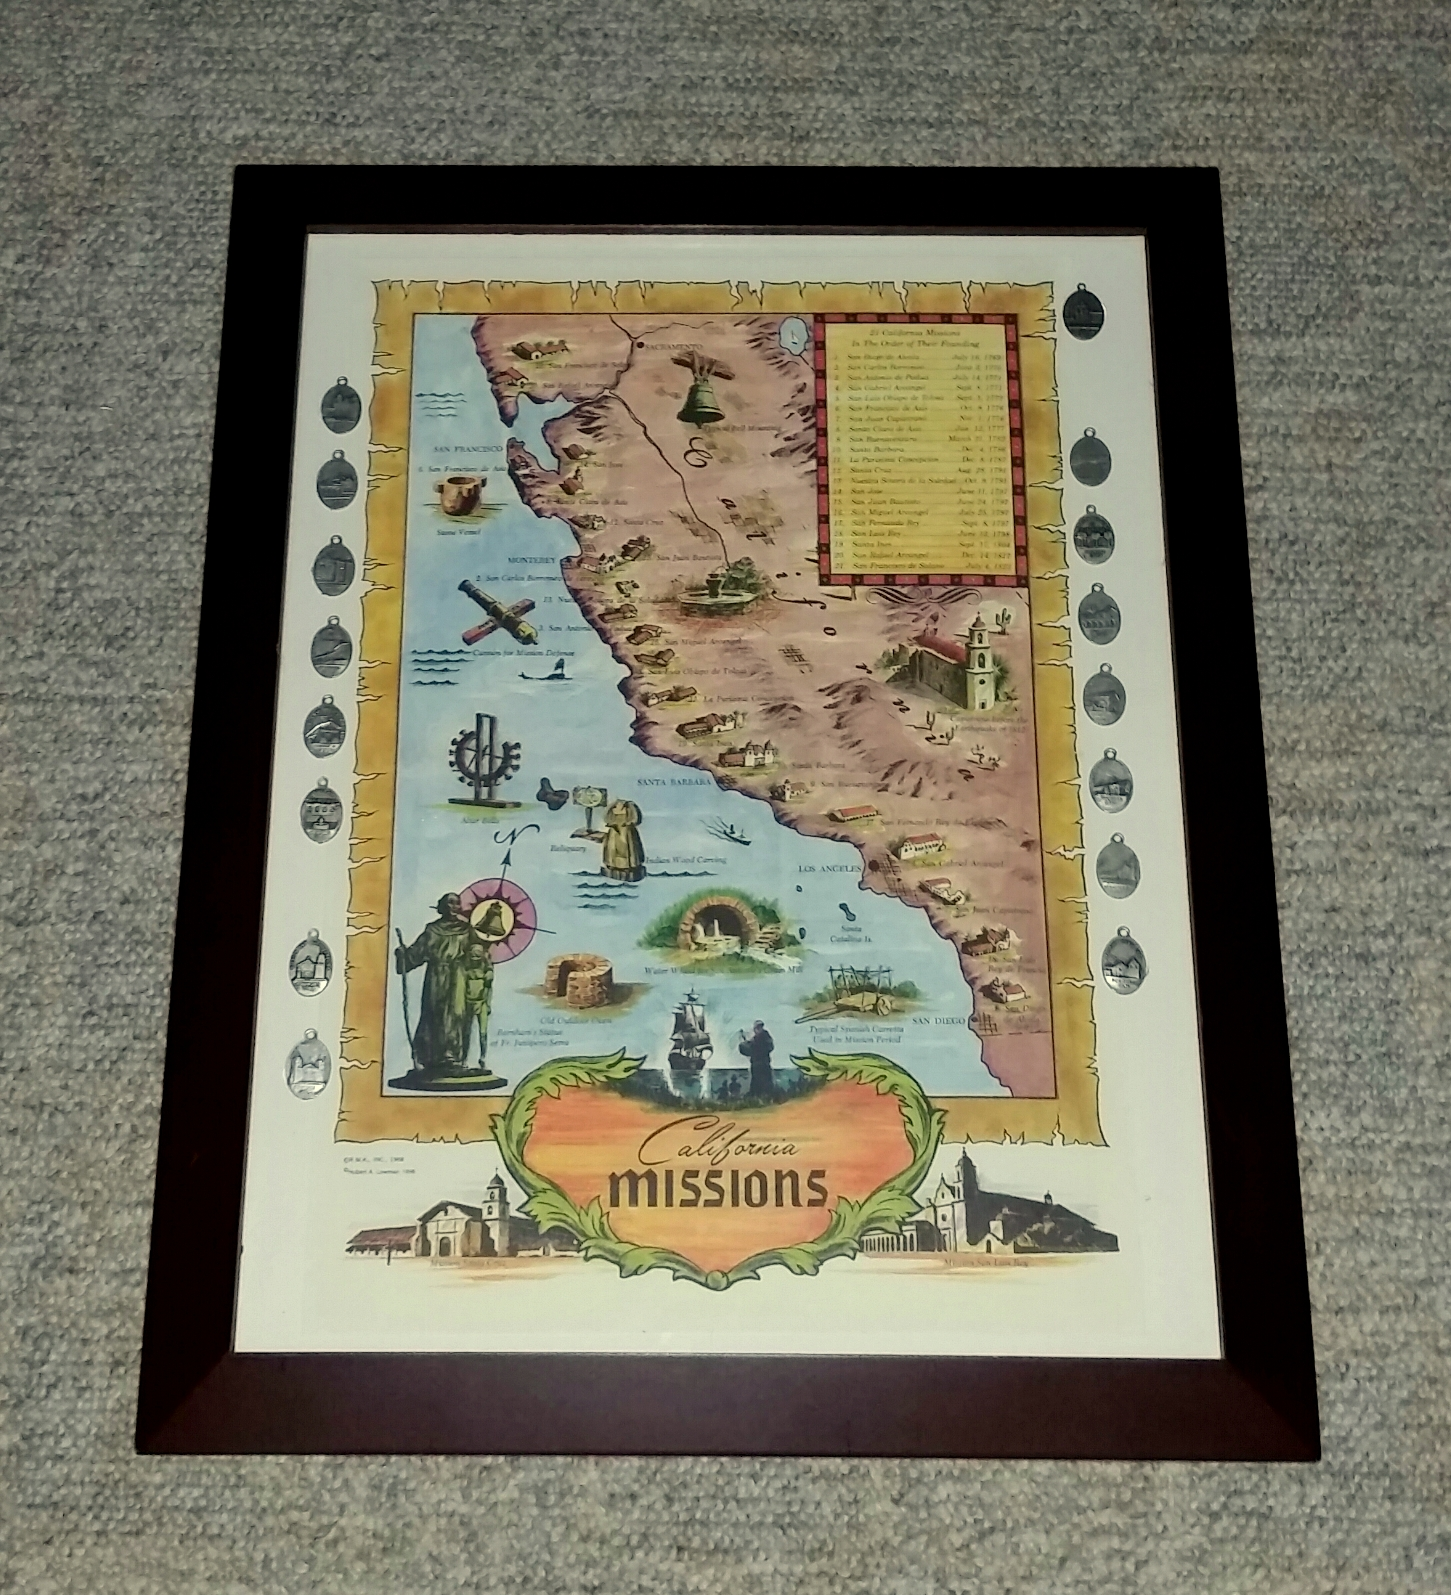 an introduction to californias missions Falconguide to californias missions and presidios a genetics fundamentals and applications genetics introduction answers genetics.